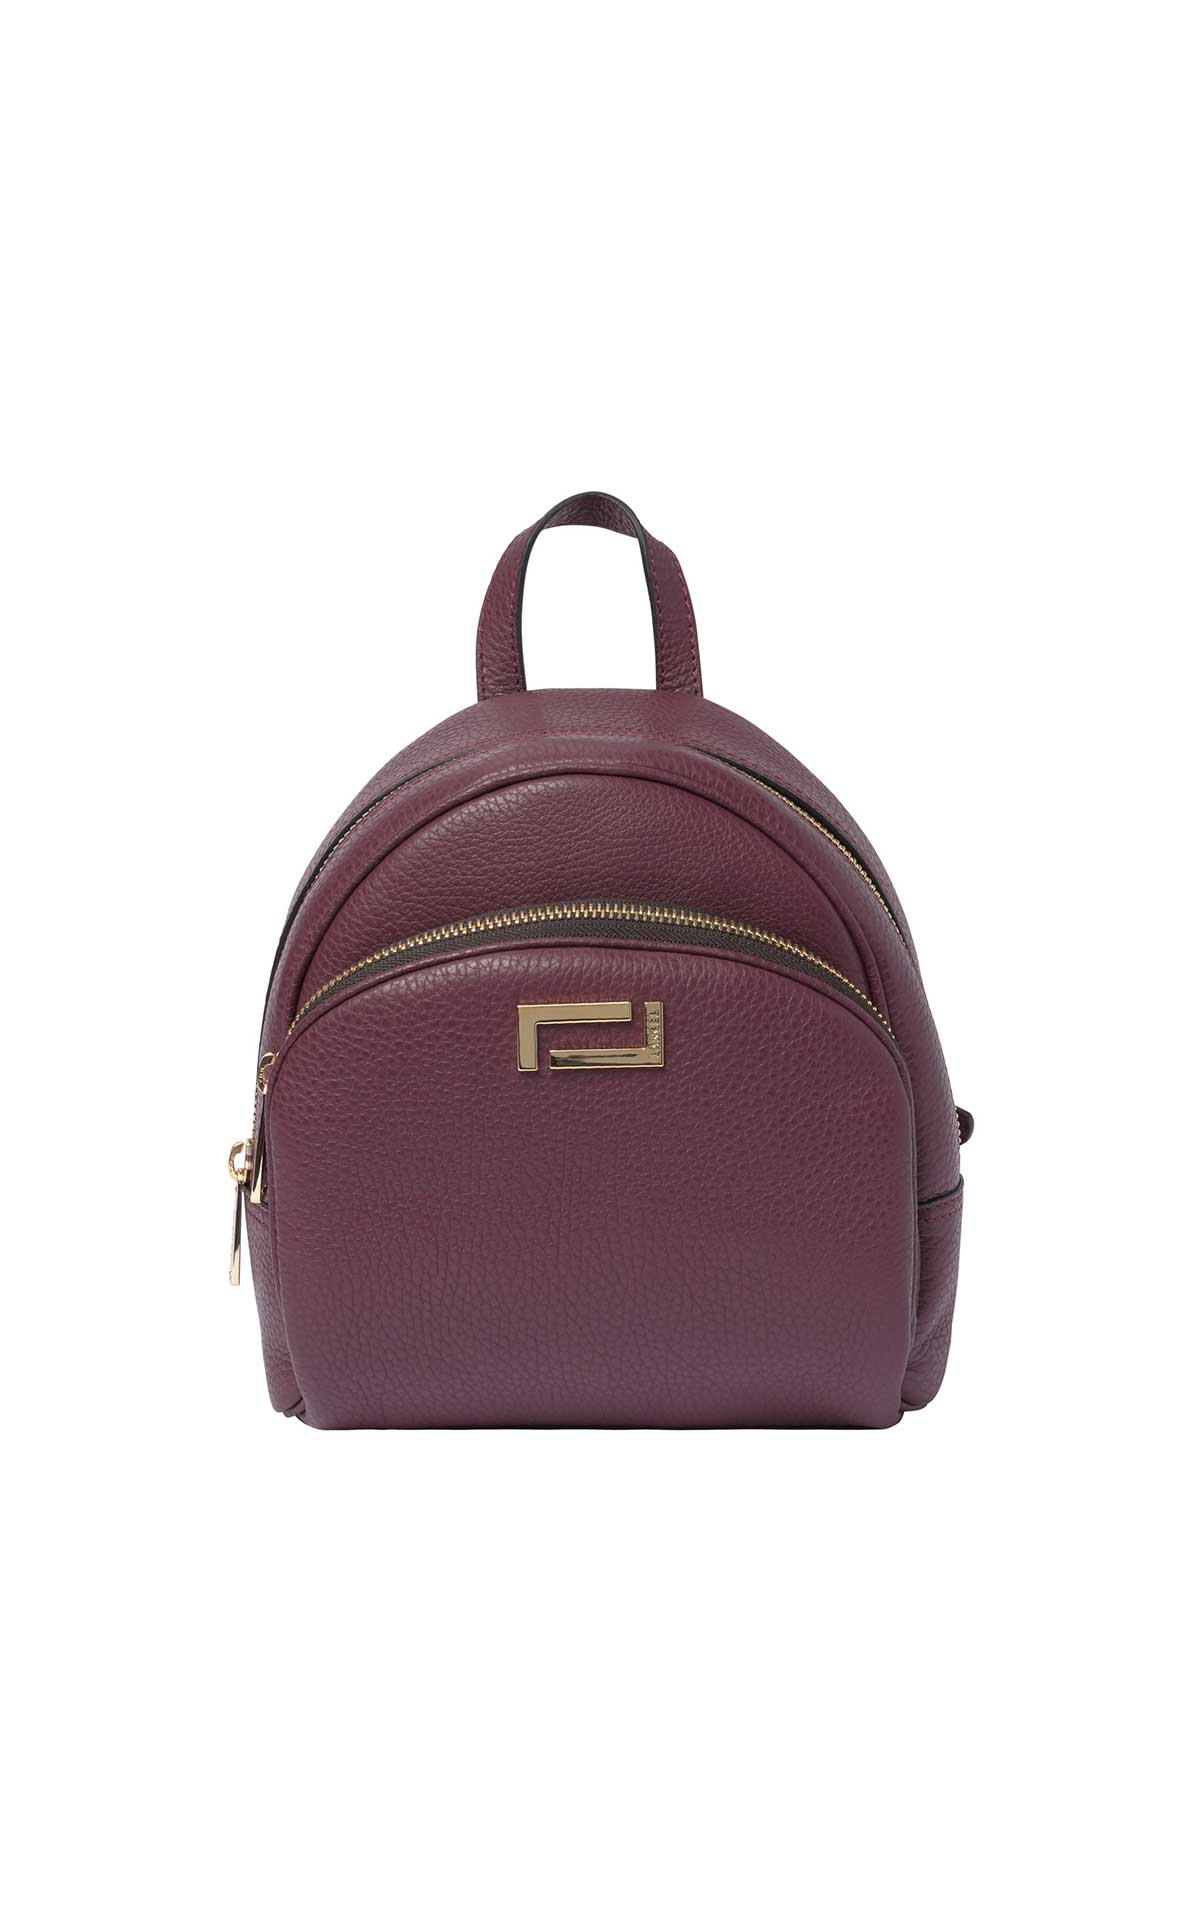 Small burgundy backpack woman Lancel